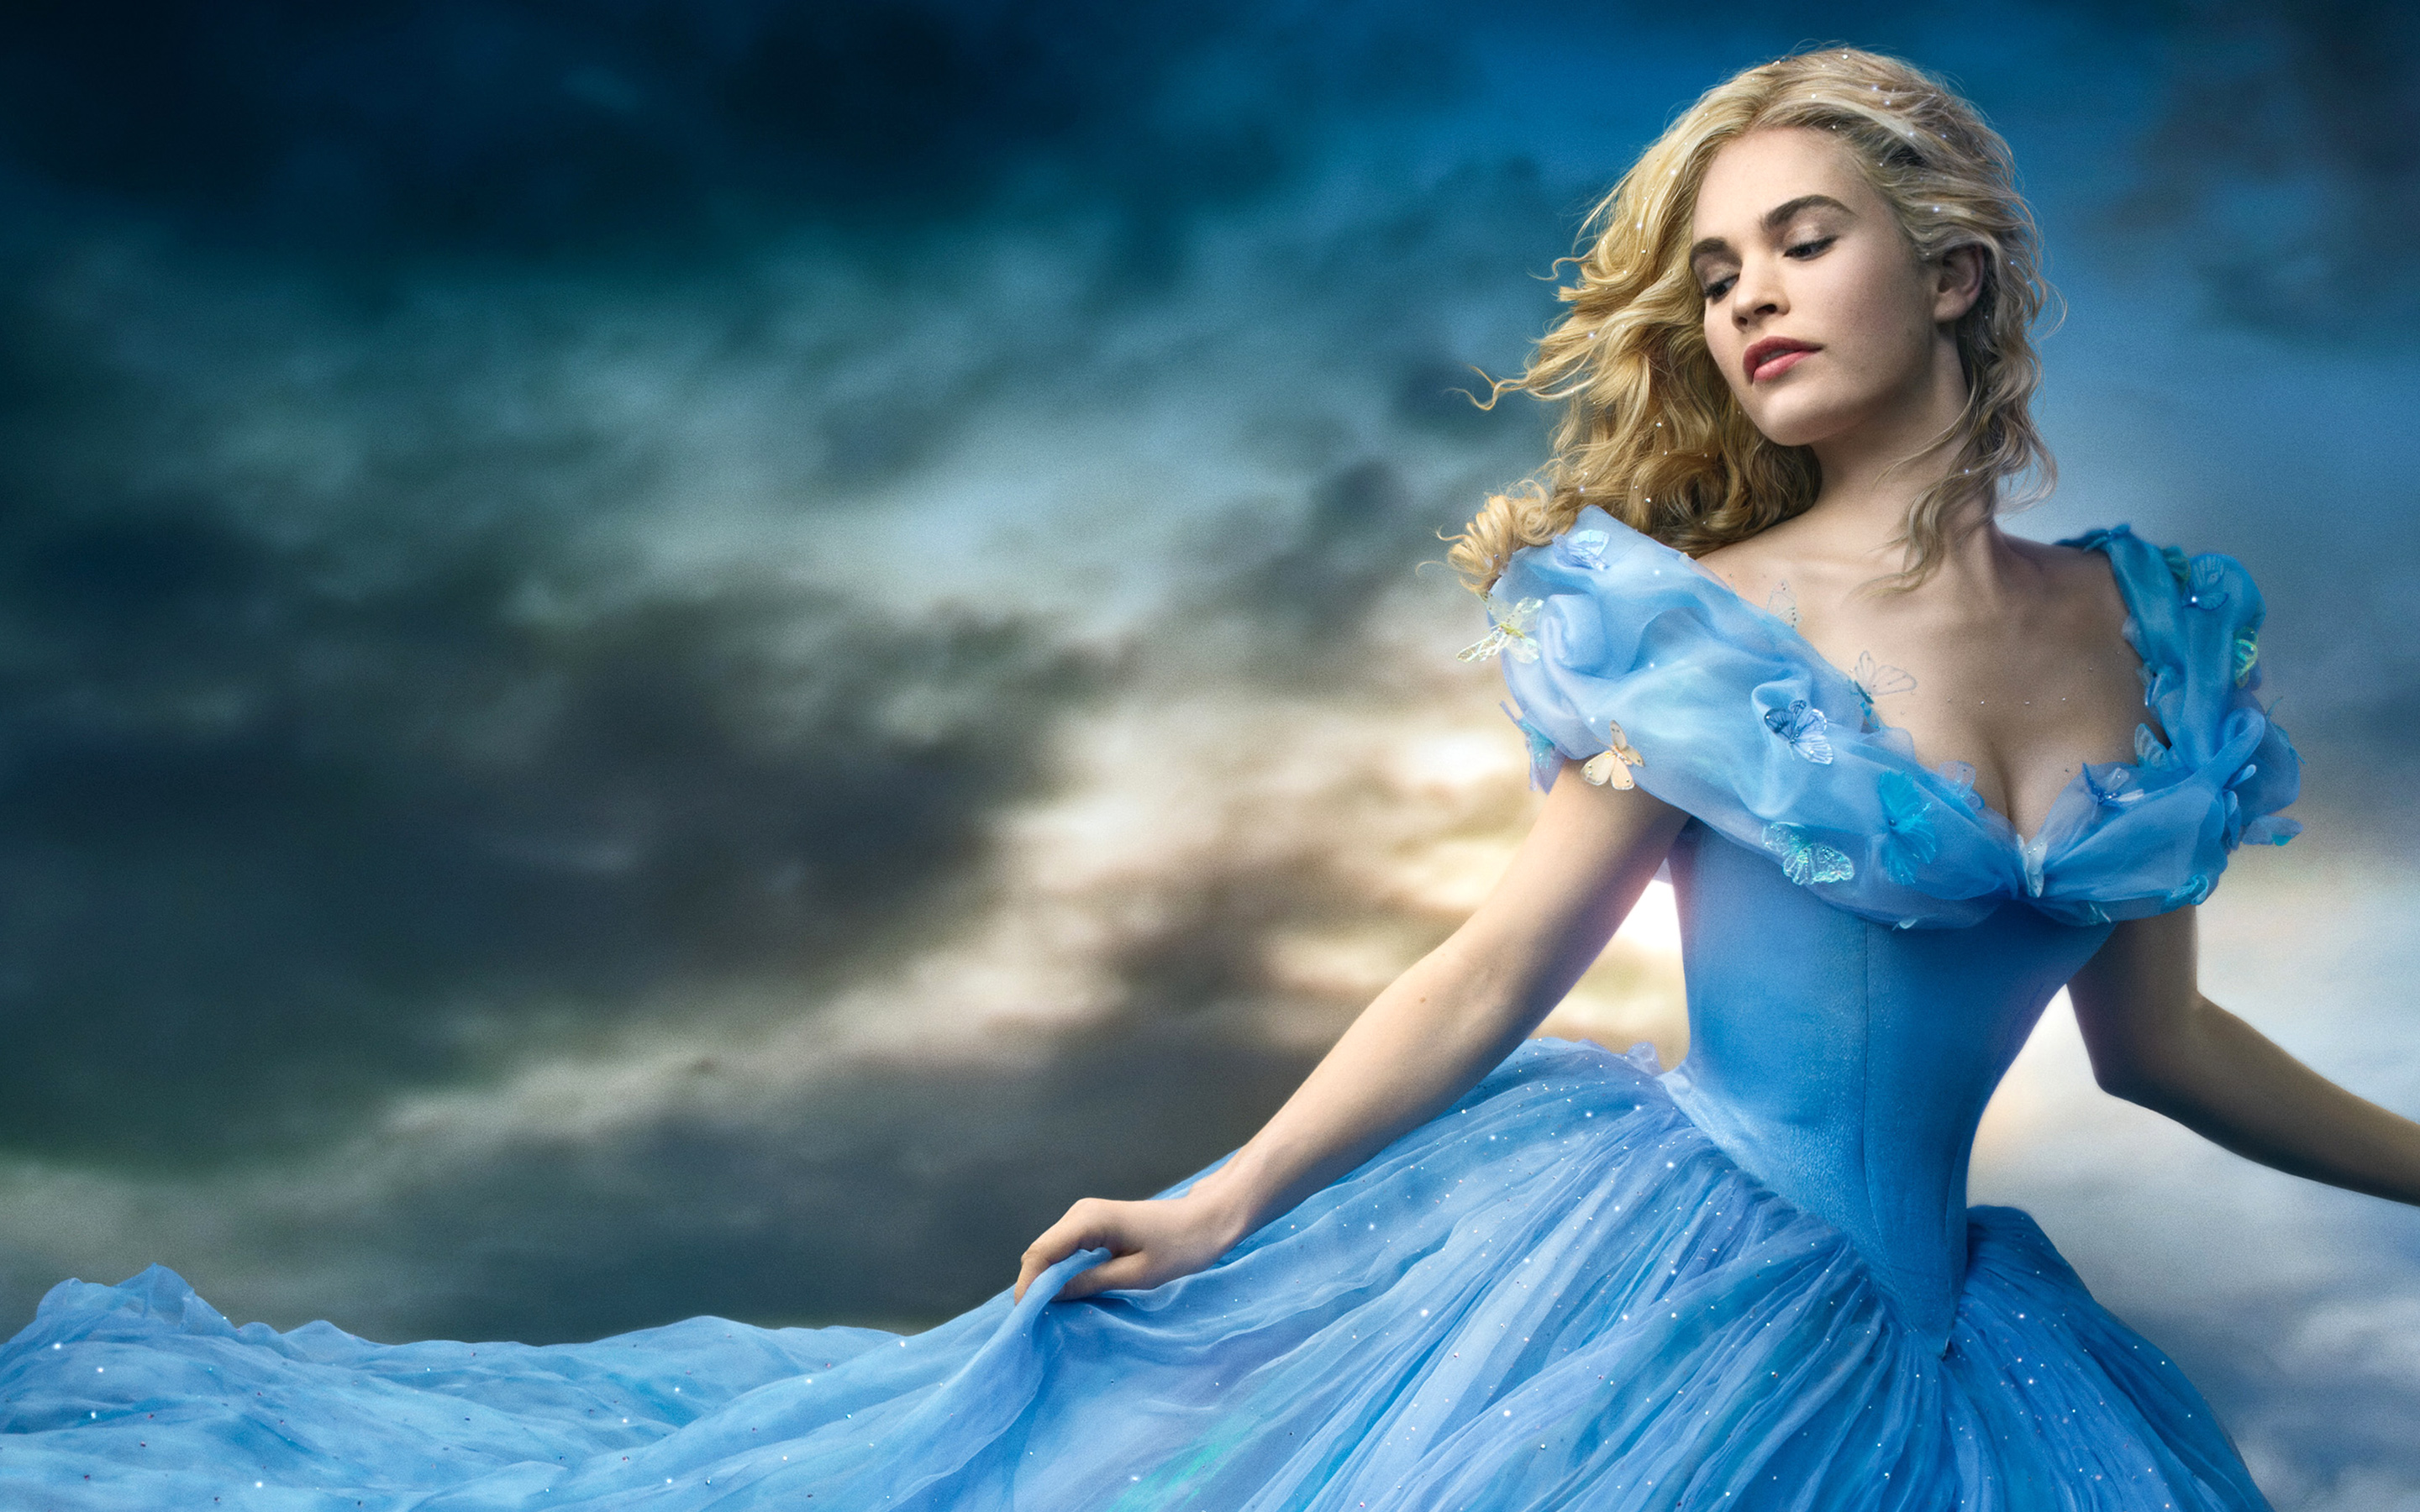 Disney Cinderella 2015 Wallpapers HD Wallpapers 2880x1800